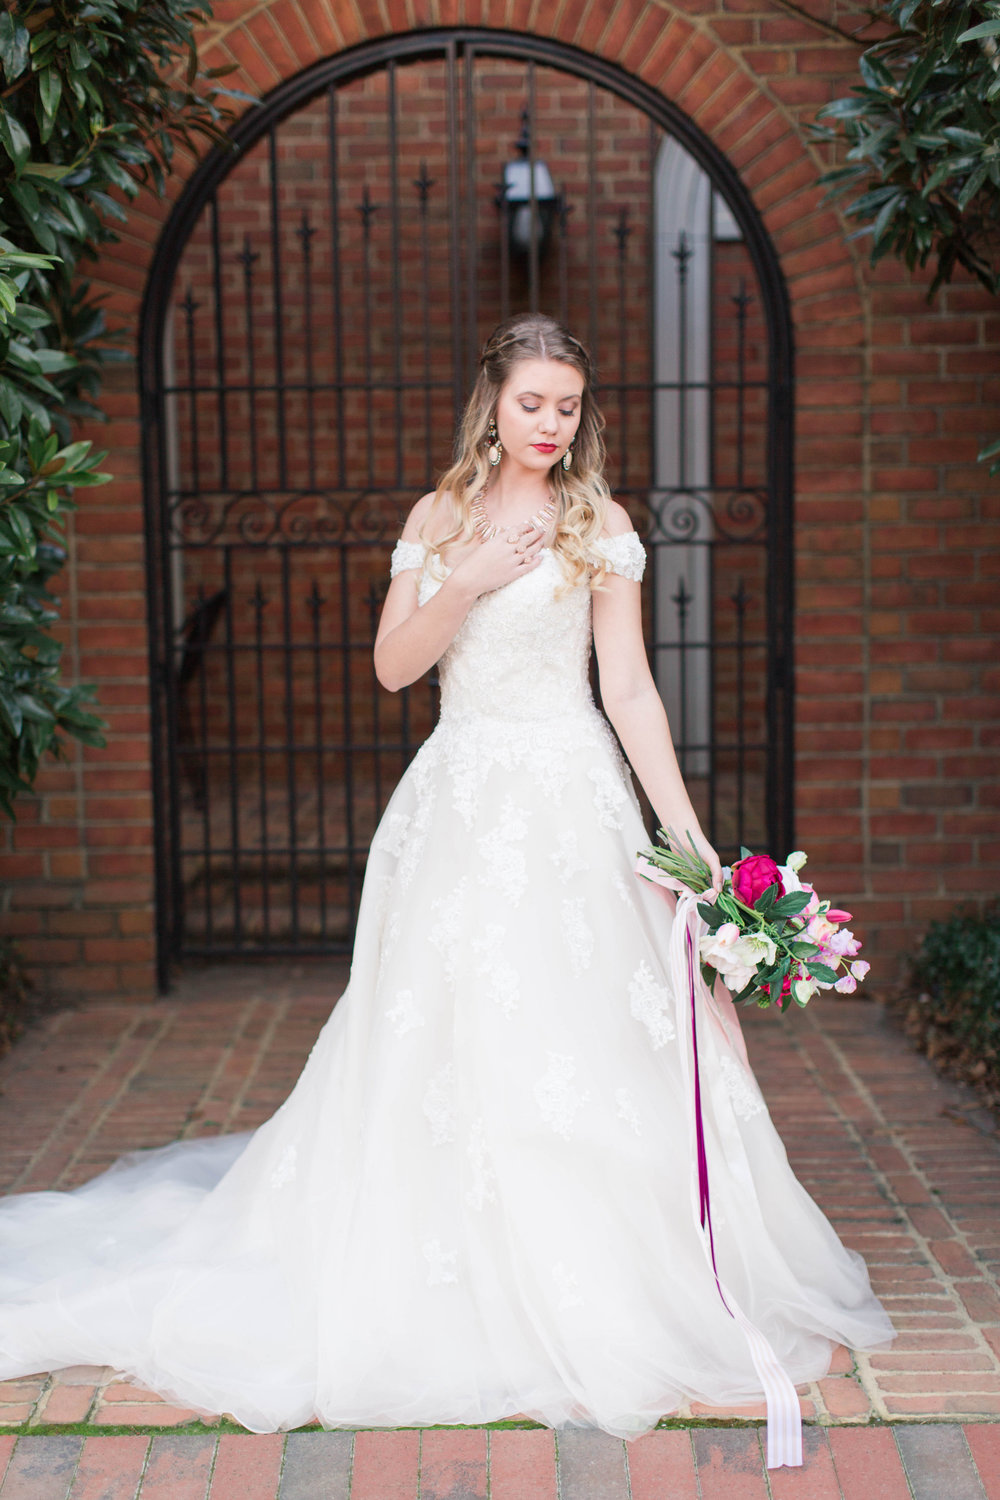 afloral-fake-flower-wedding-ivory-and-beau-bridal-boutique-maggie-sottero-saffron-the-hall-on-vine-wedding-statesboro-wedding-savannah-wedding-kristian-designs-rachel-strickland-photography-savannah-bridal-southern-bride-savannah-bride-4.jpg